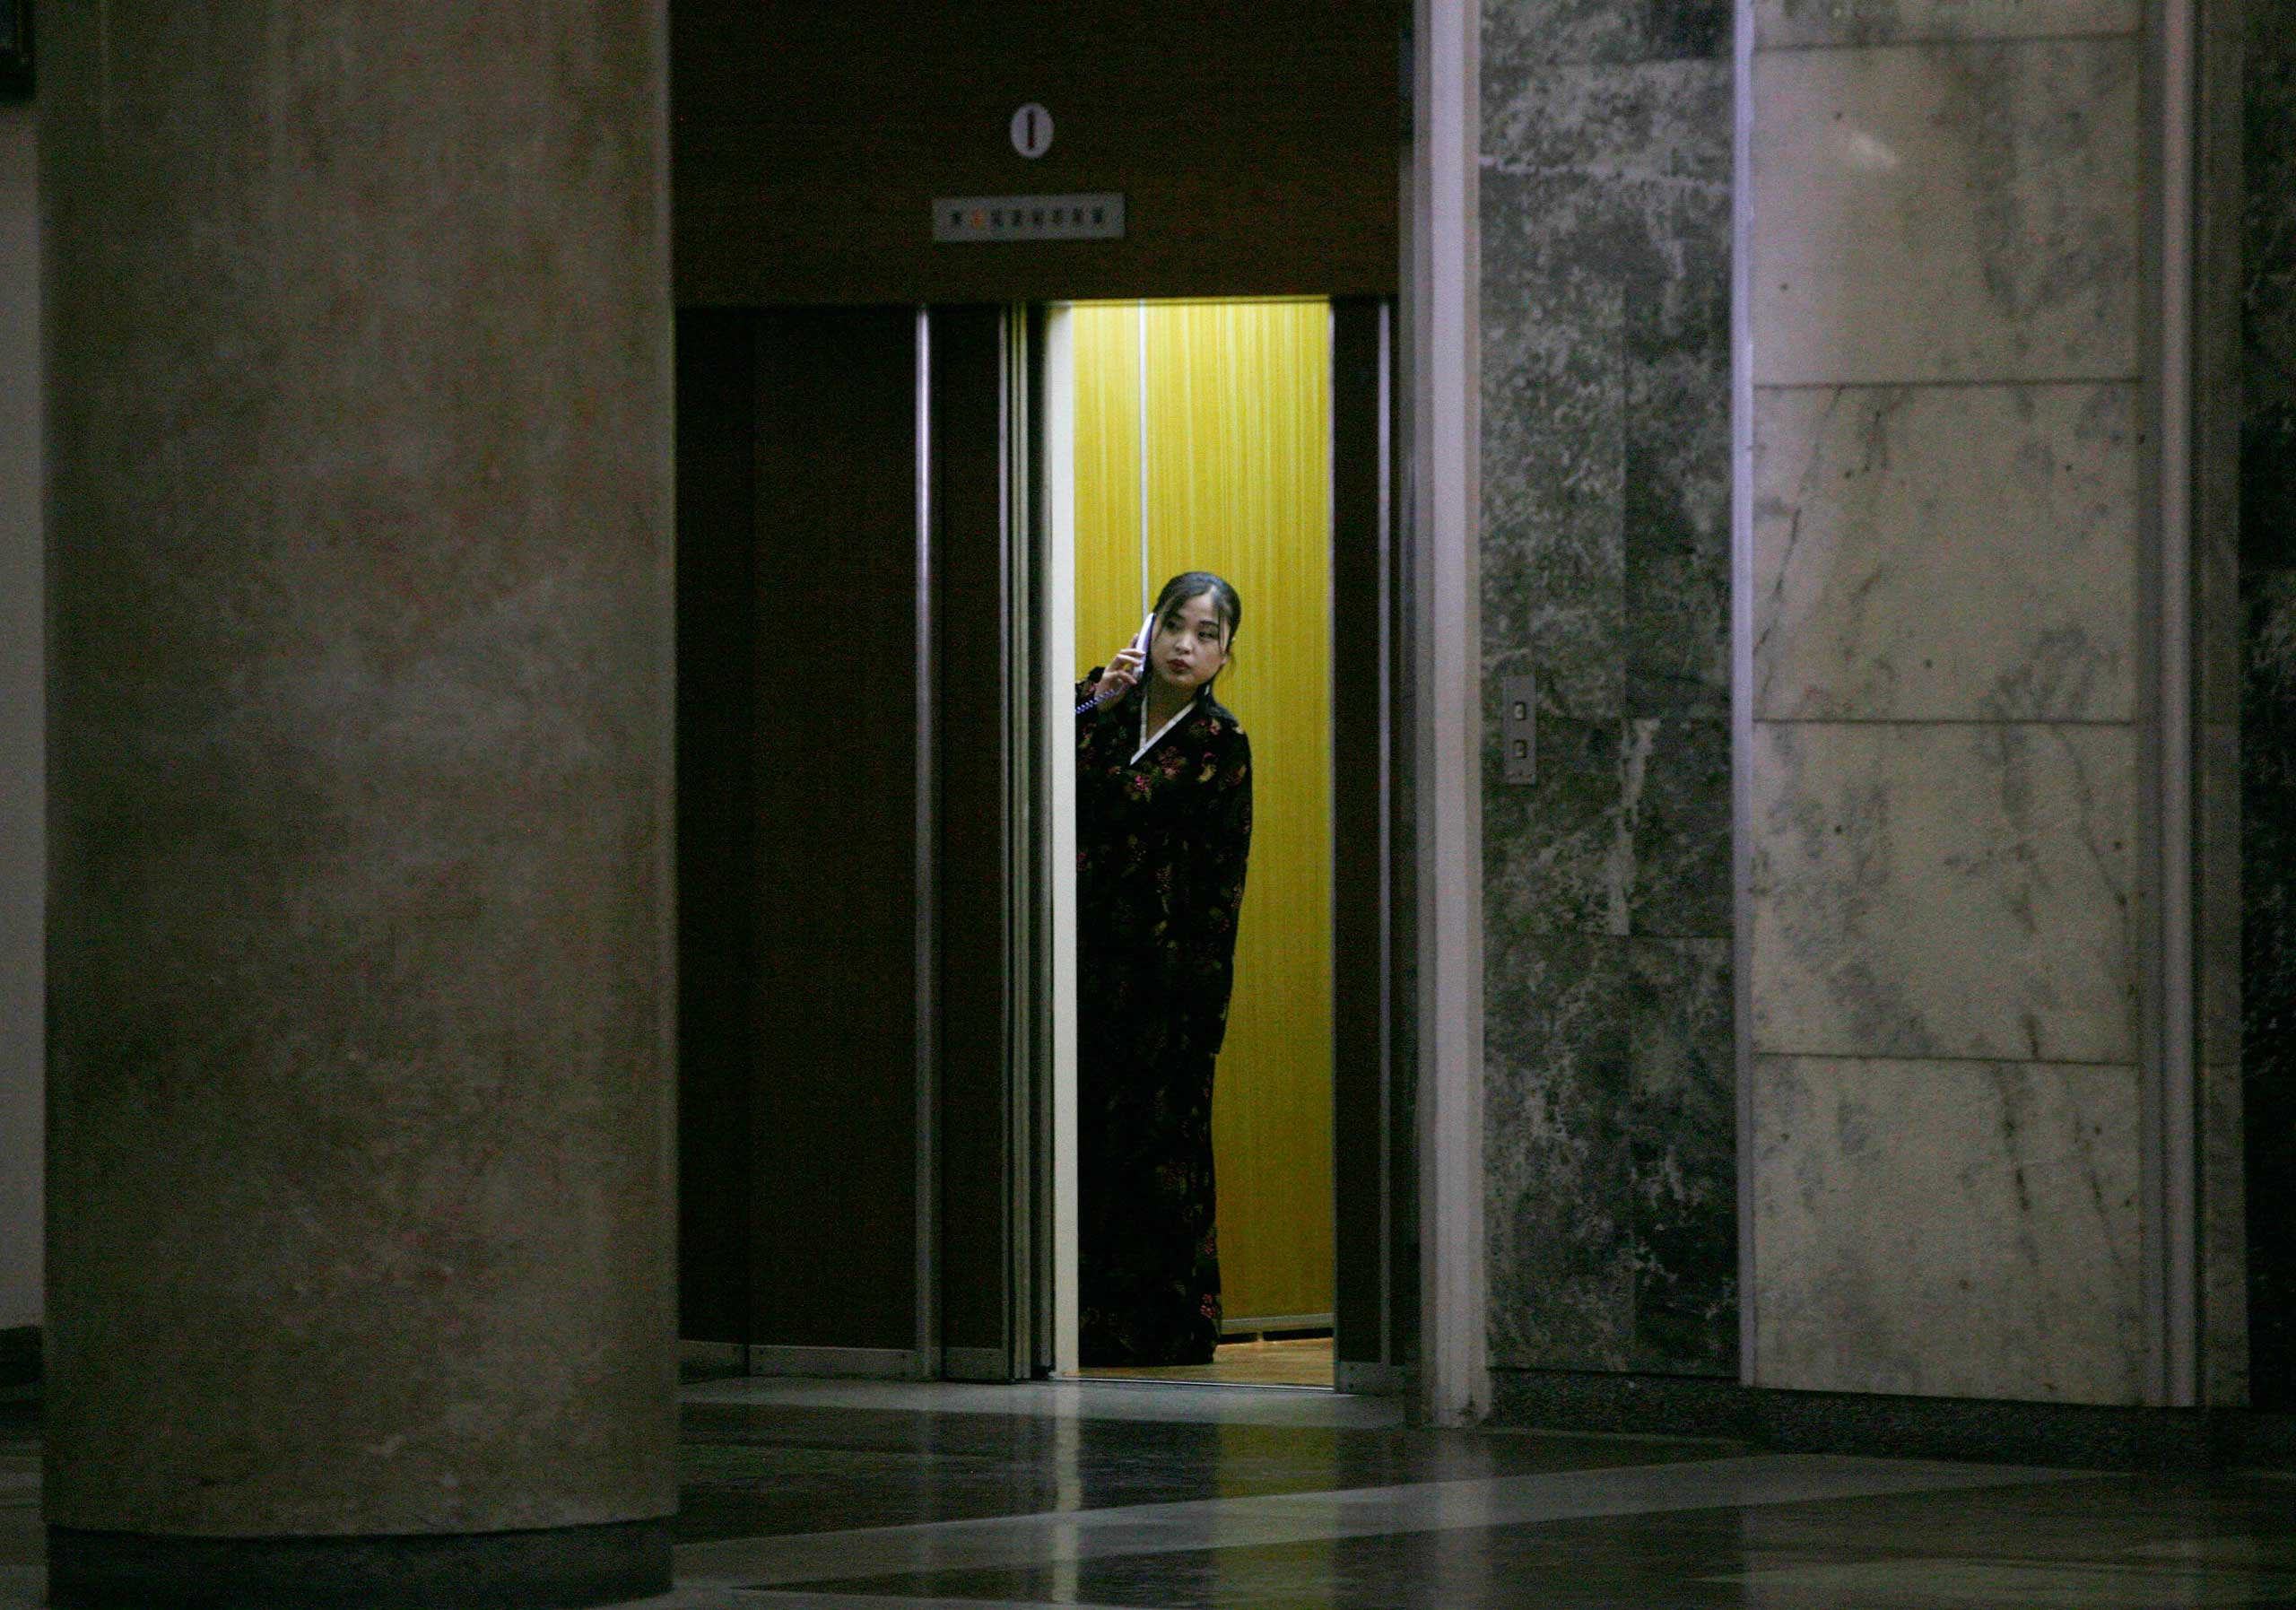 Feb. 26, 2008. A North Korean woman peers out of an elevator while speaking on an in-house phone at a library in Pyongyang.